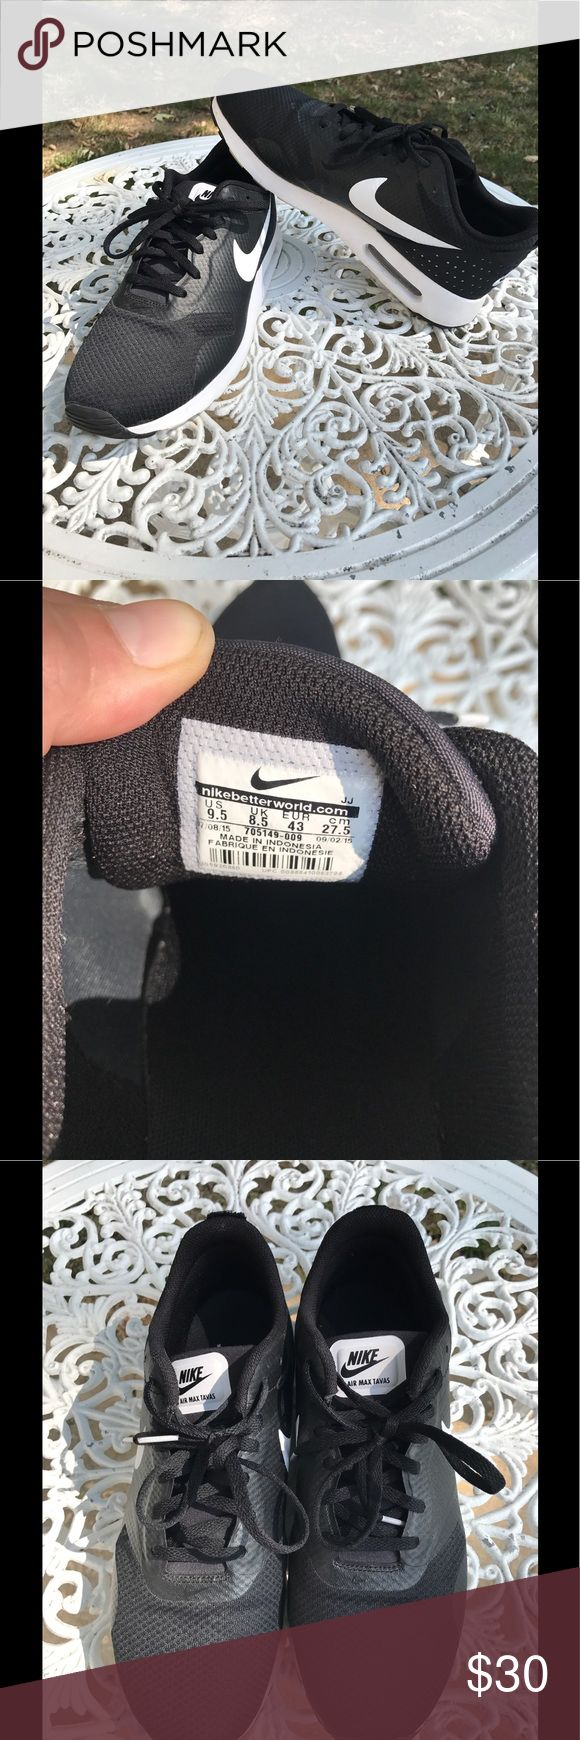 Nike Air Max Tavas Black & White Shoes SIze 9.5 Black & white Nike Air Max Tavas shoes size 9.5. In good shape but the loops on the back of the shoes have been cut off. Only worn for a week or two at most. Nike Shoes Sneakers